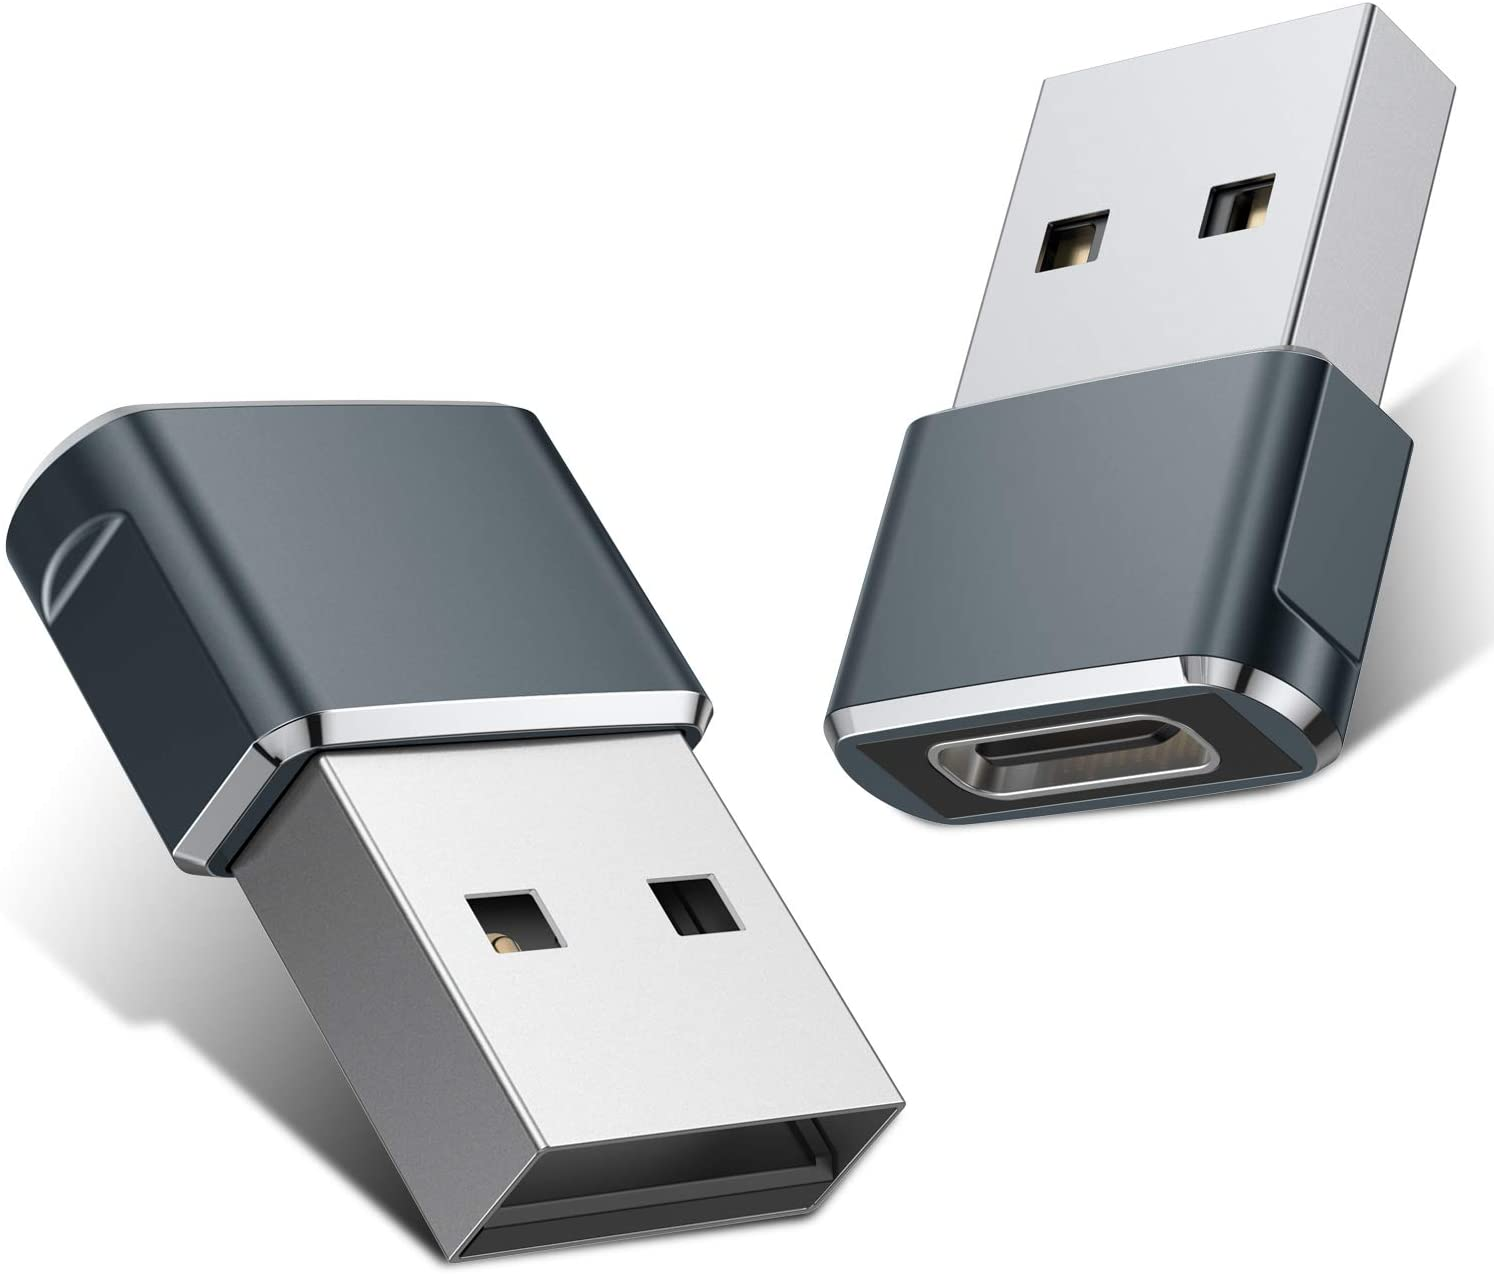 Save $1 on USB C Female to USB Male Adapter